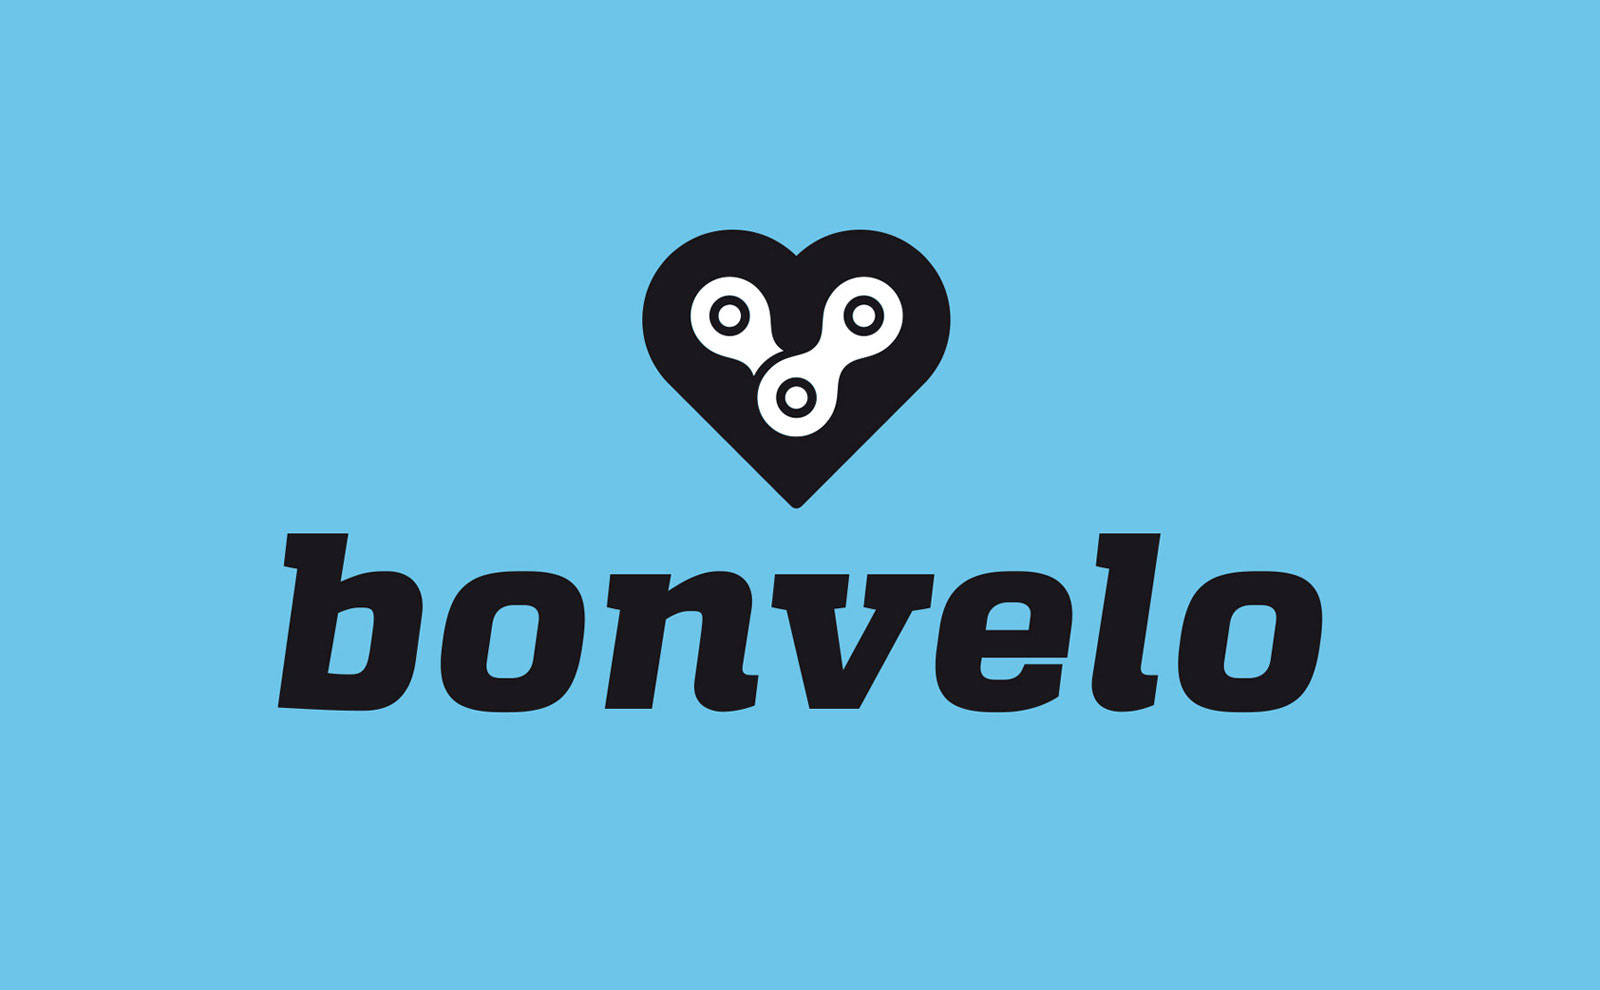 Logo Corporate Design bonvelo Fahrradmarke